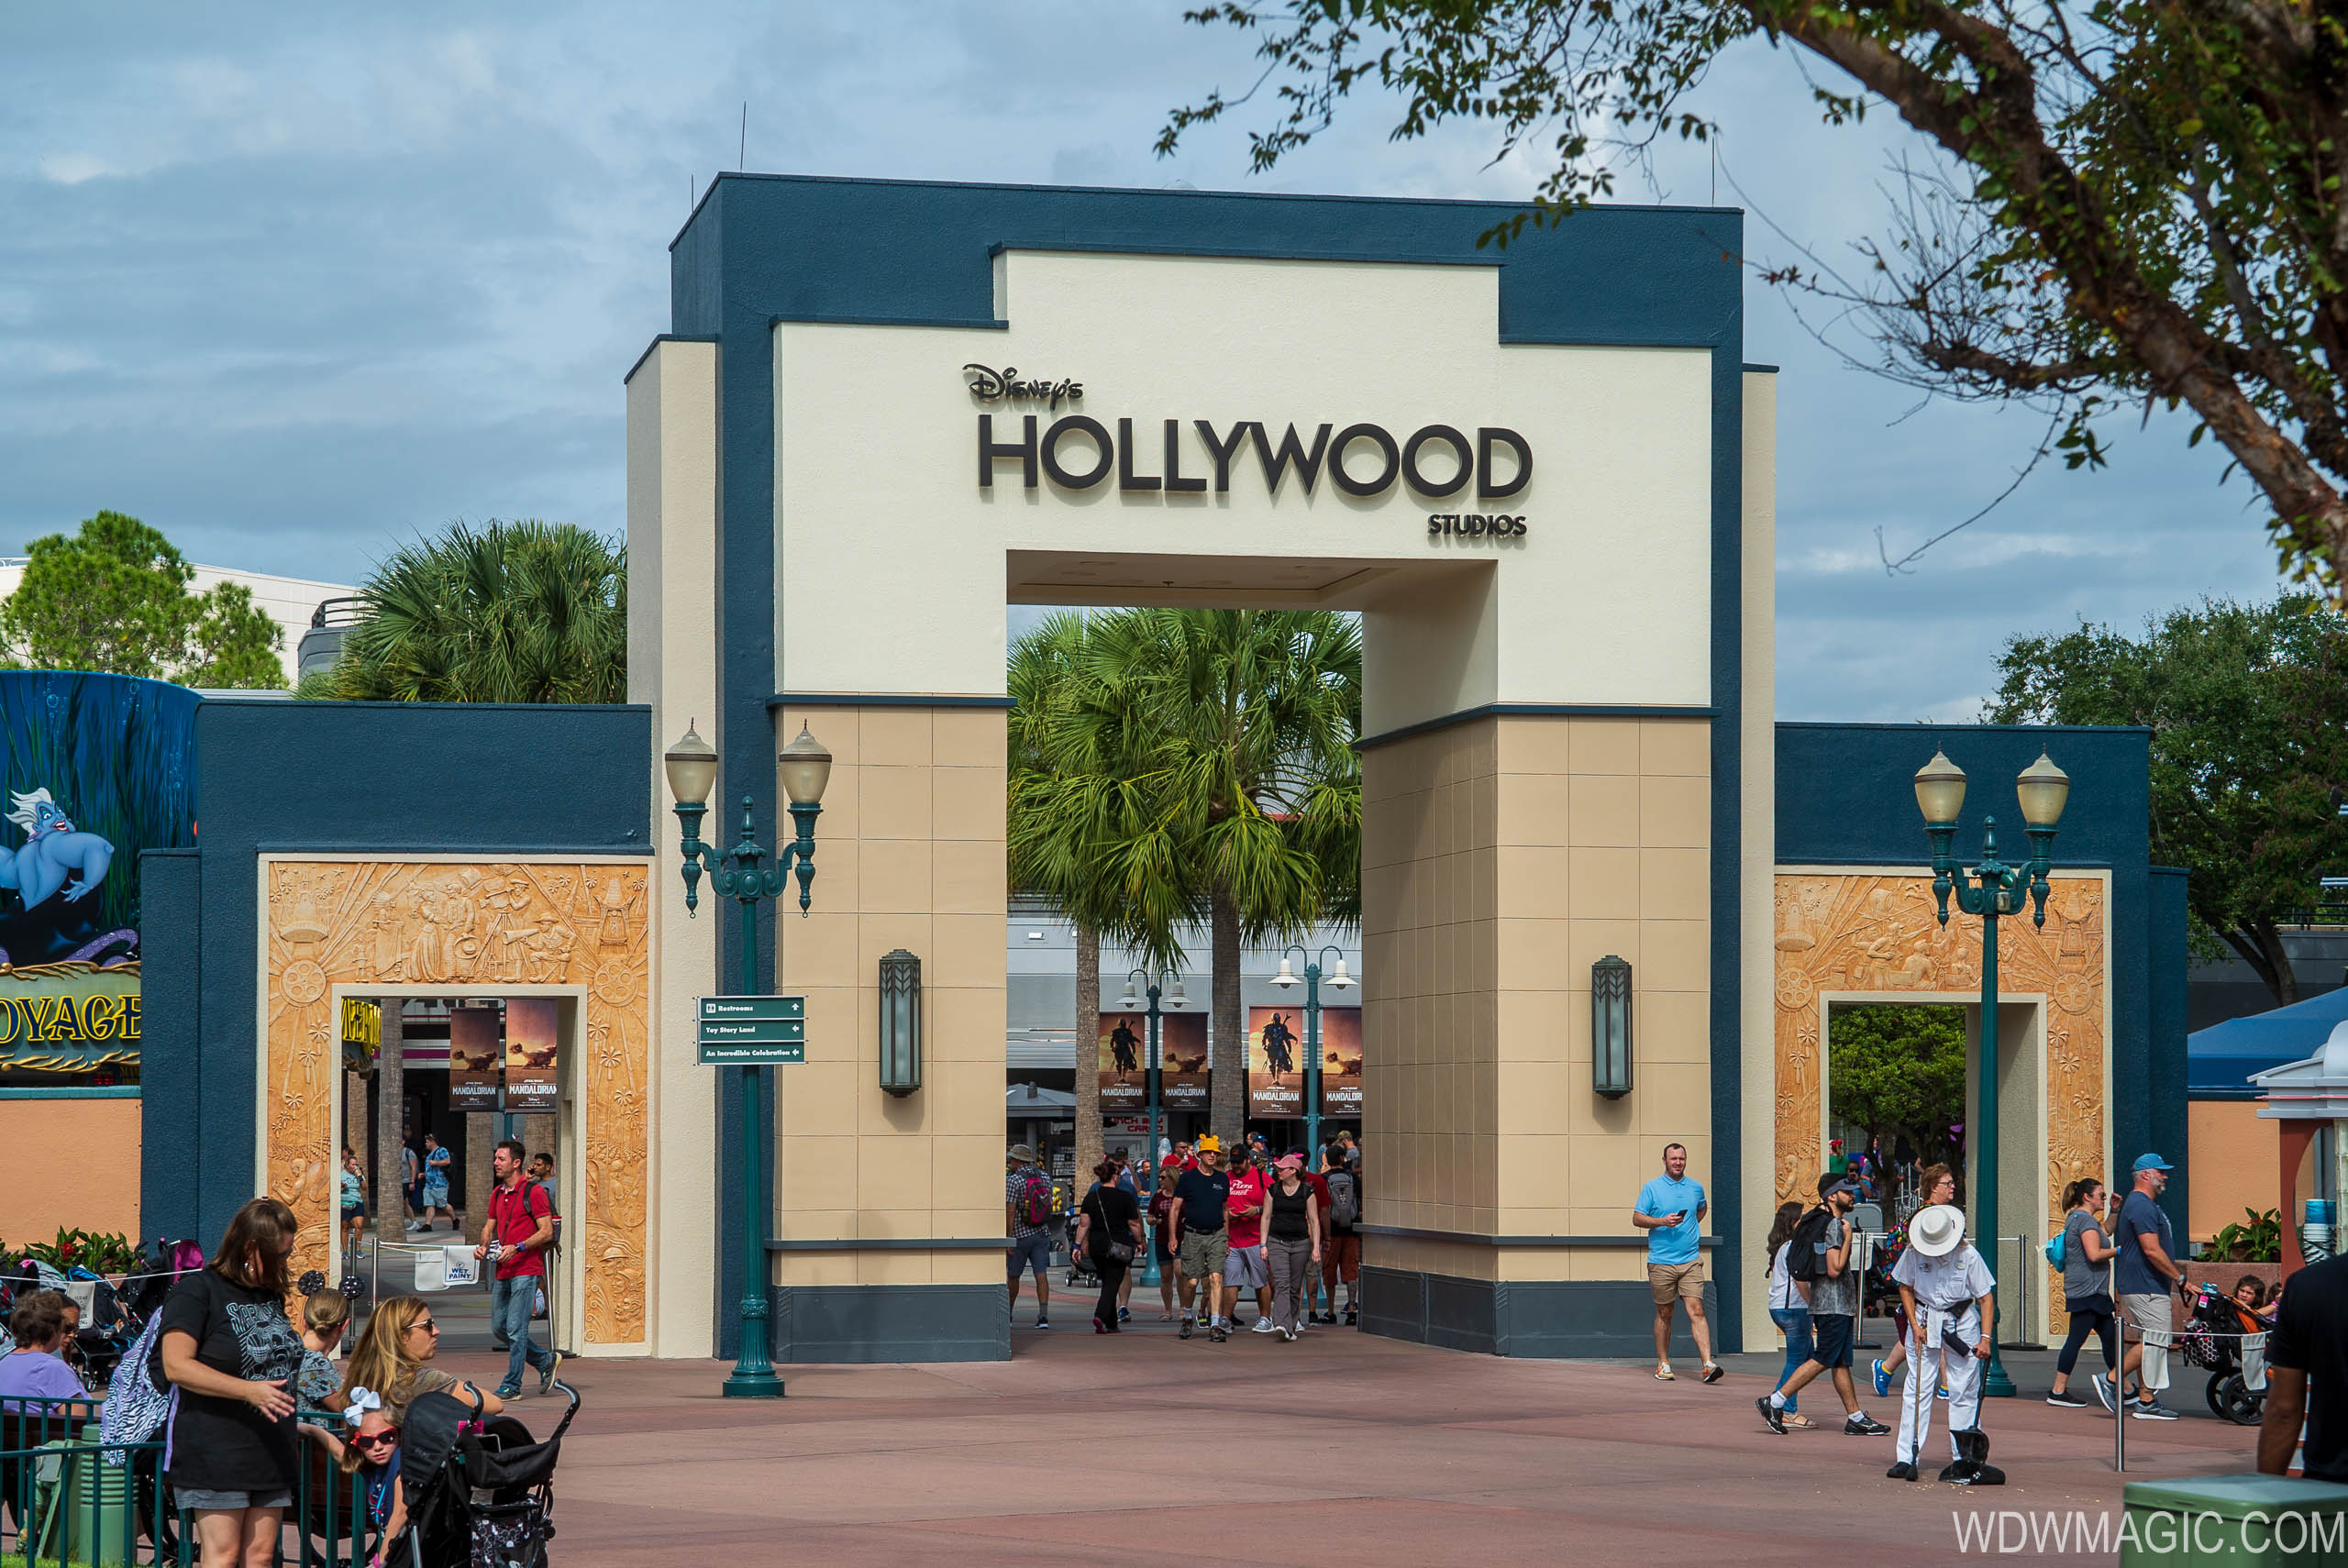 Disney's Hollywood Studios will see the return of another show